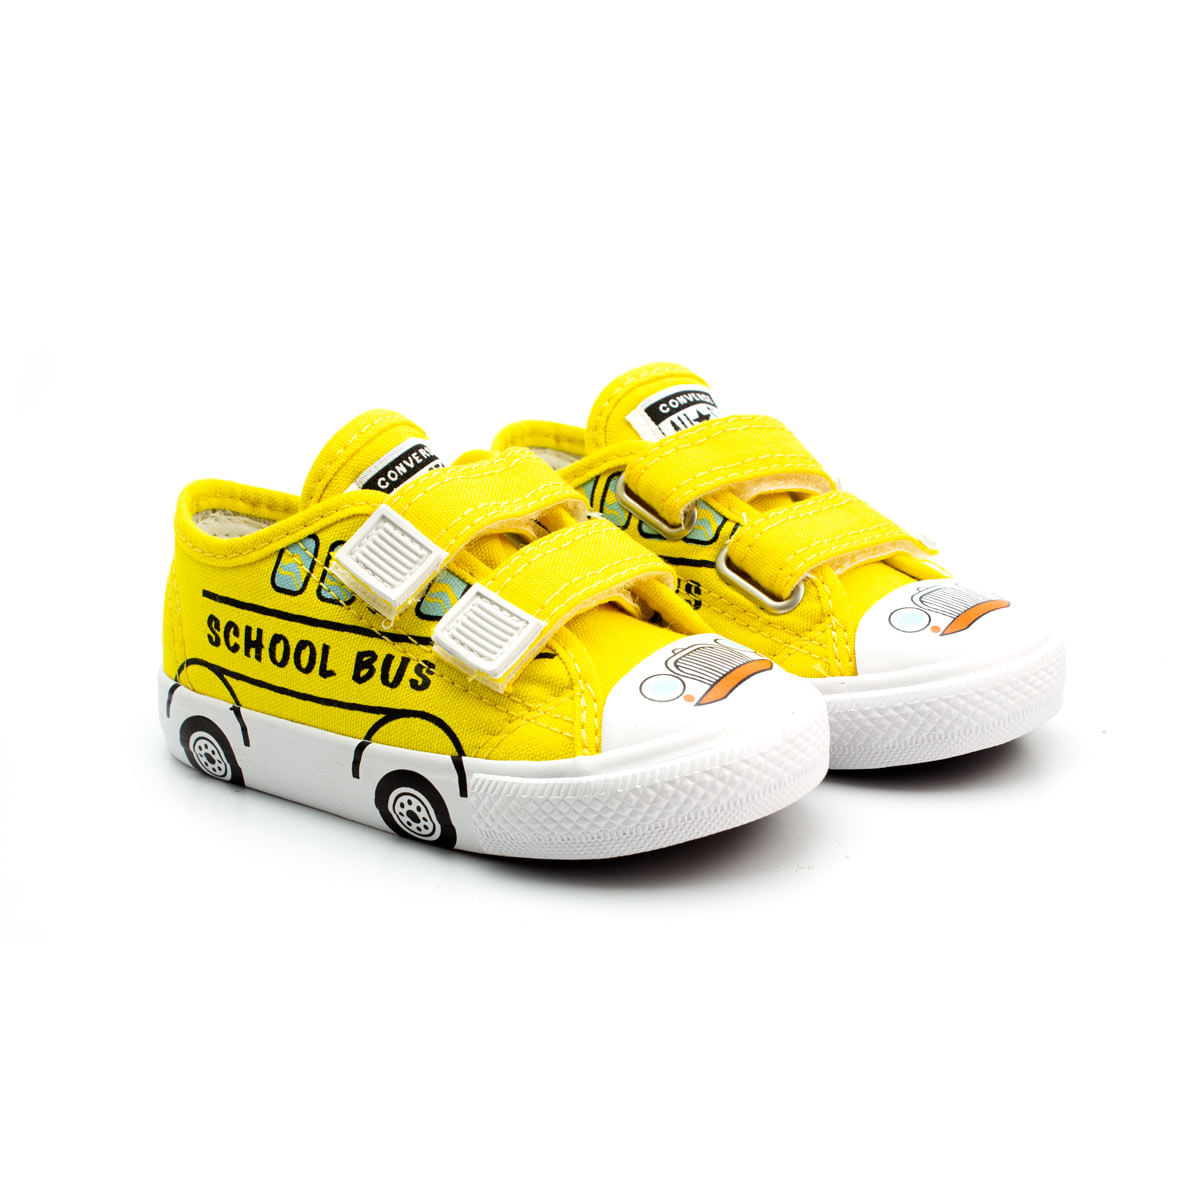 Tenis-Infantil-Converse-All-Star-2V-School-Bus--18-ao-25-